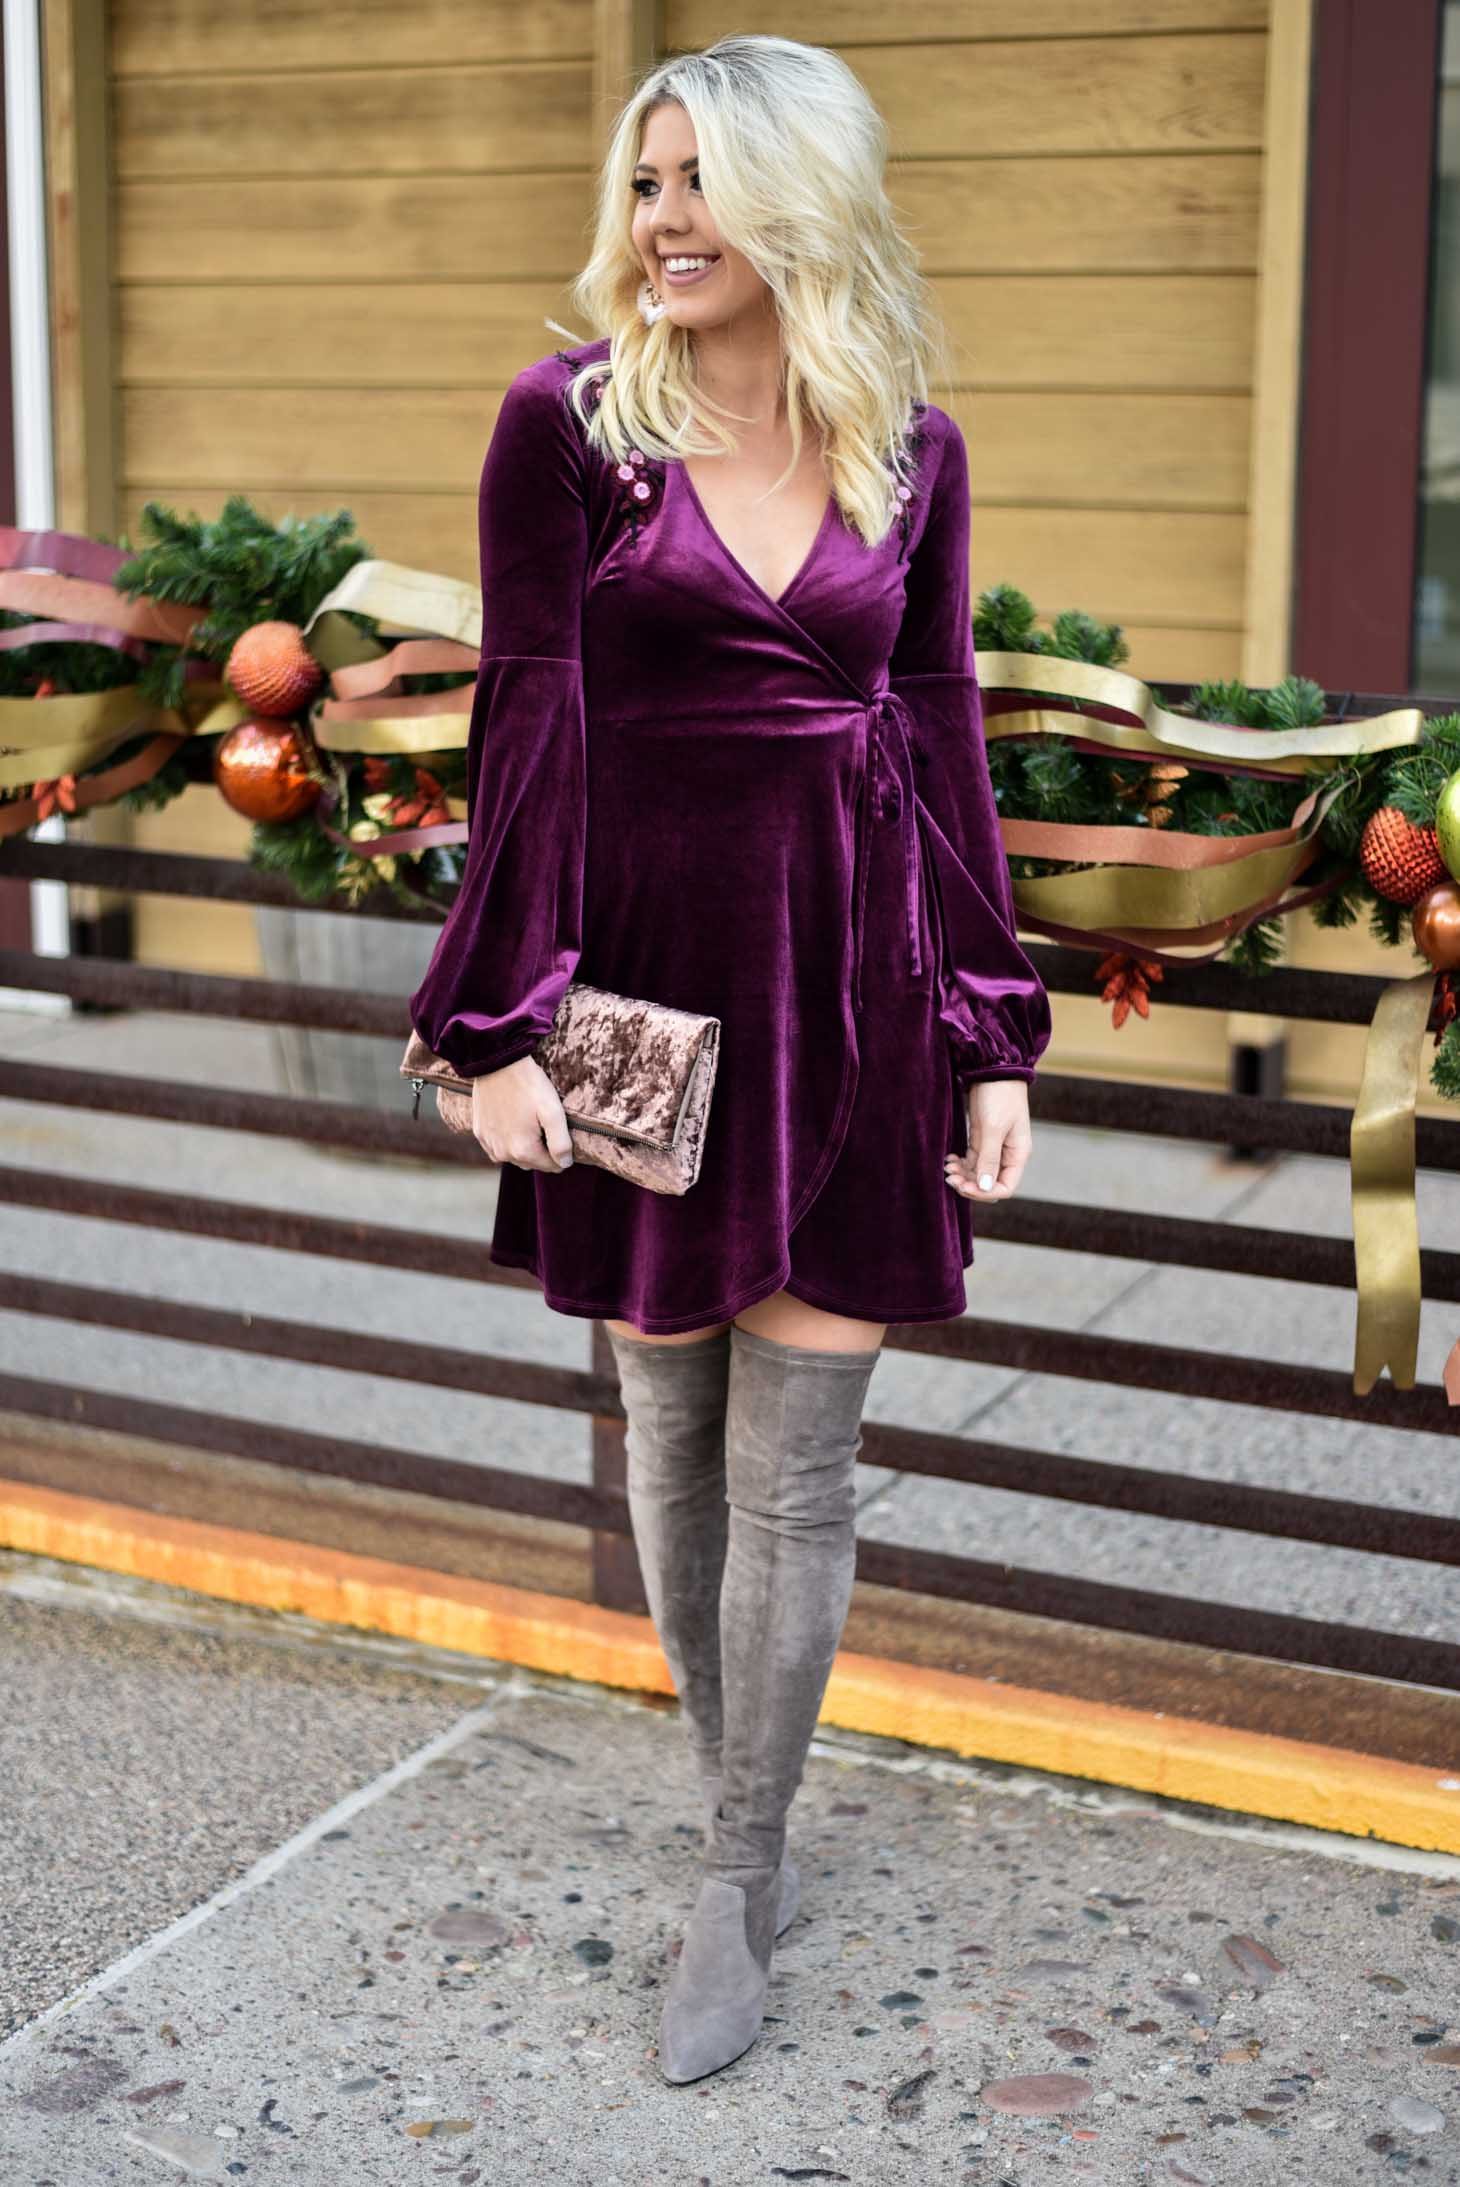 Erin Elizabeth of Wink and a Twirl in Holiday Dress